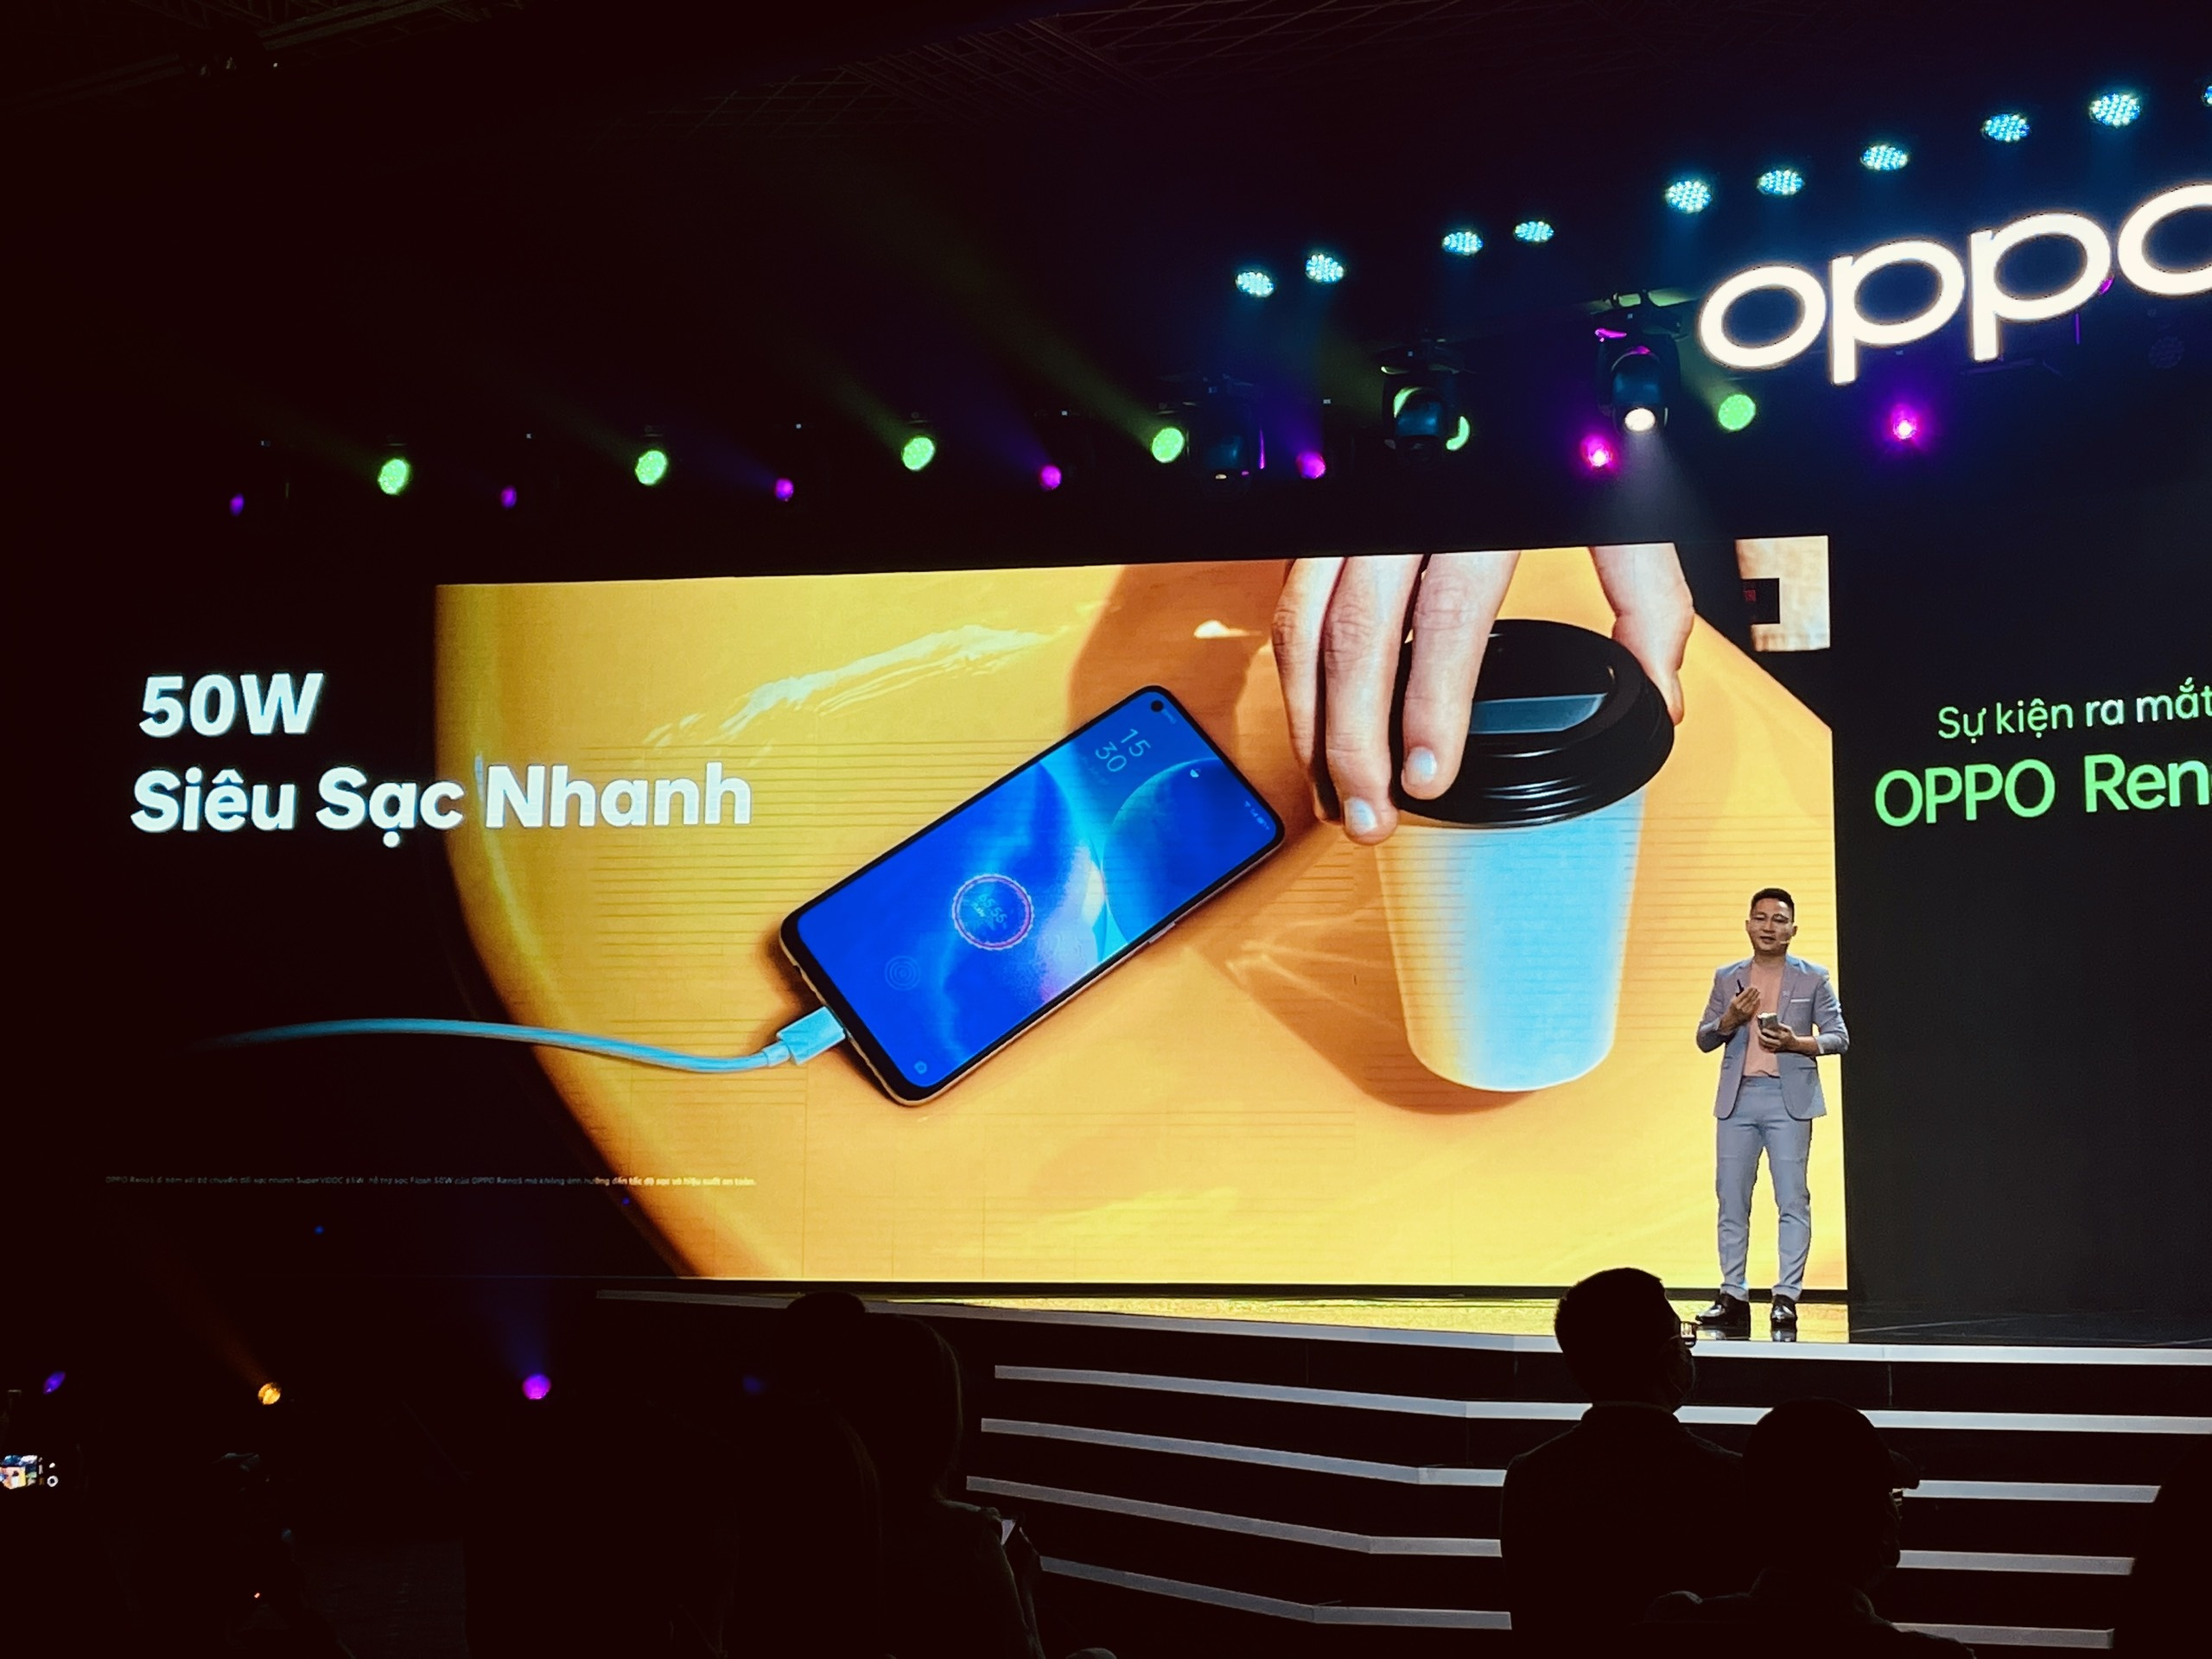 Oppo anh 5